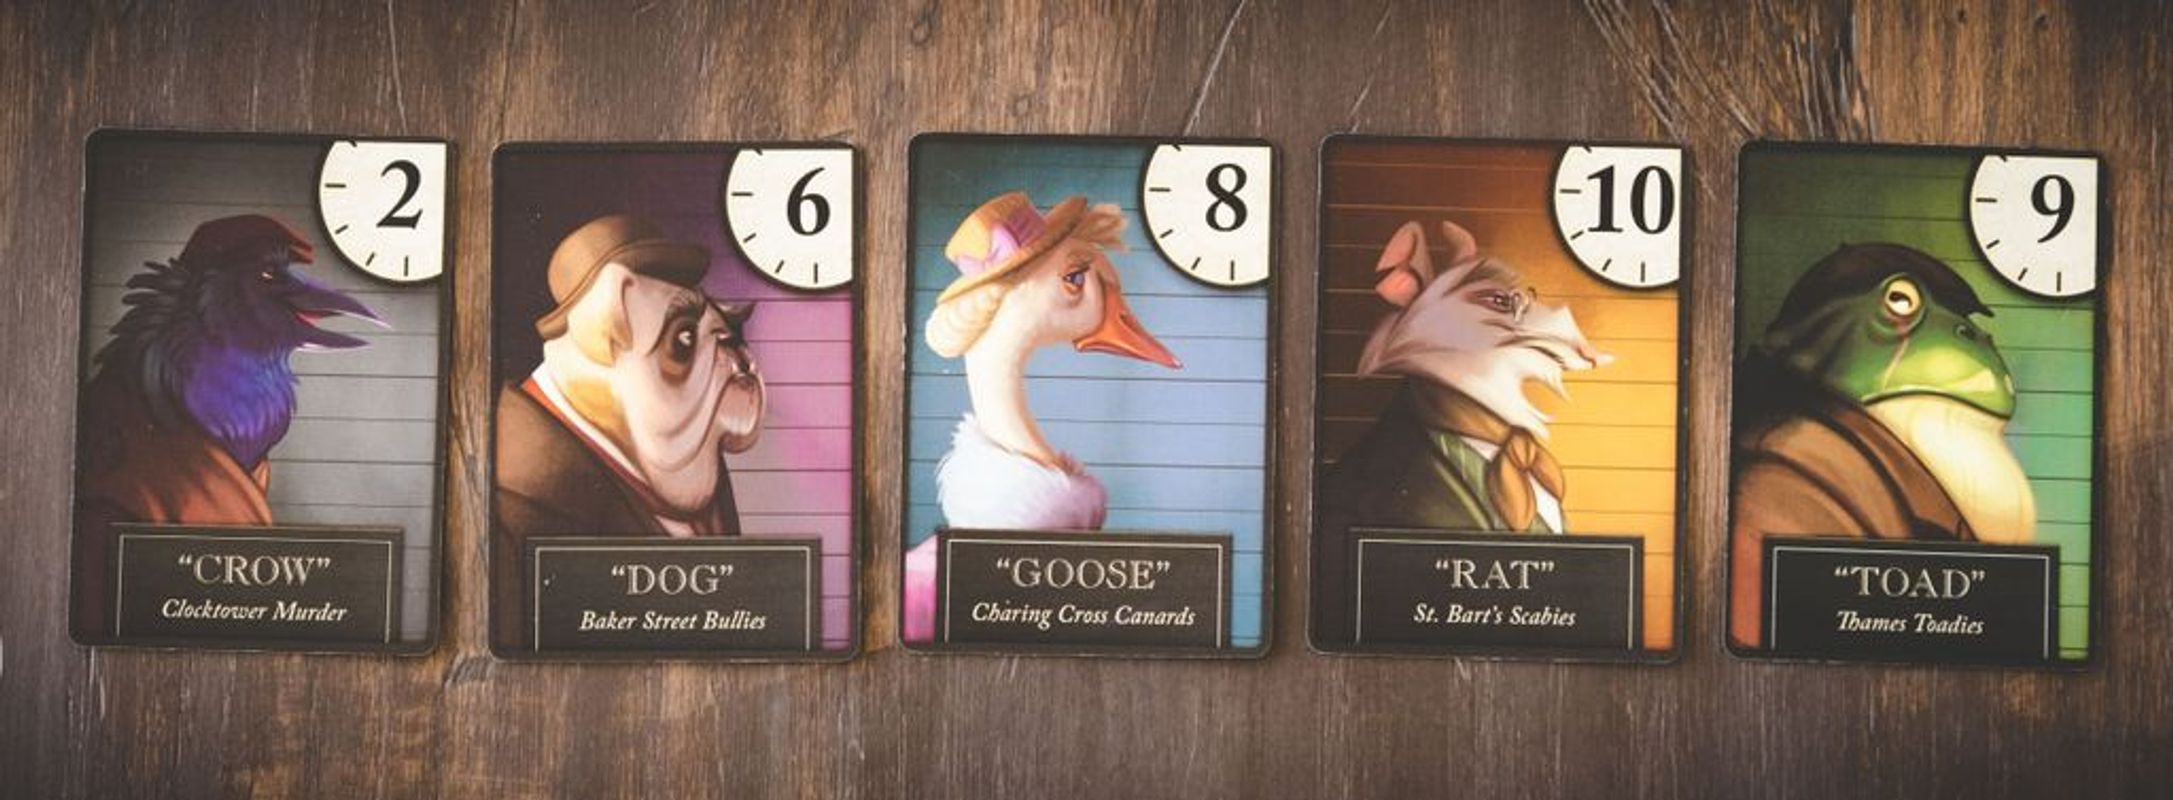 Purrrlock Holmes: Furriarty's Trail cards